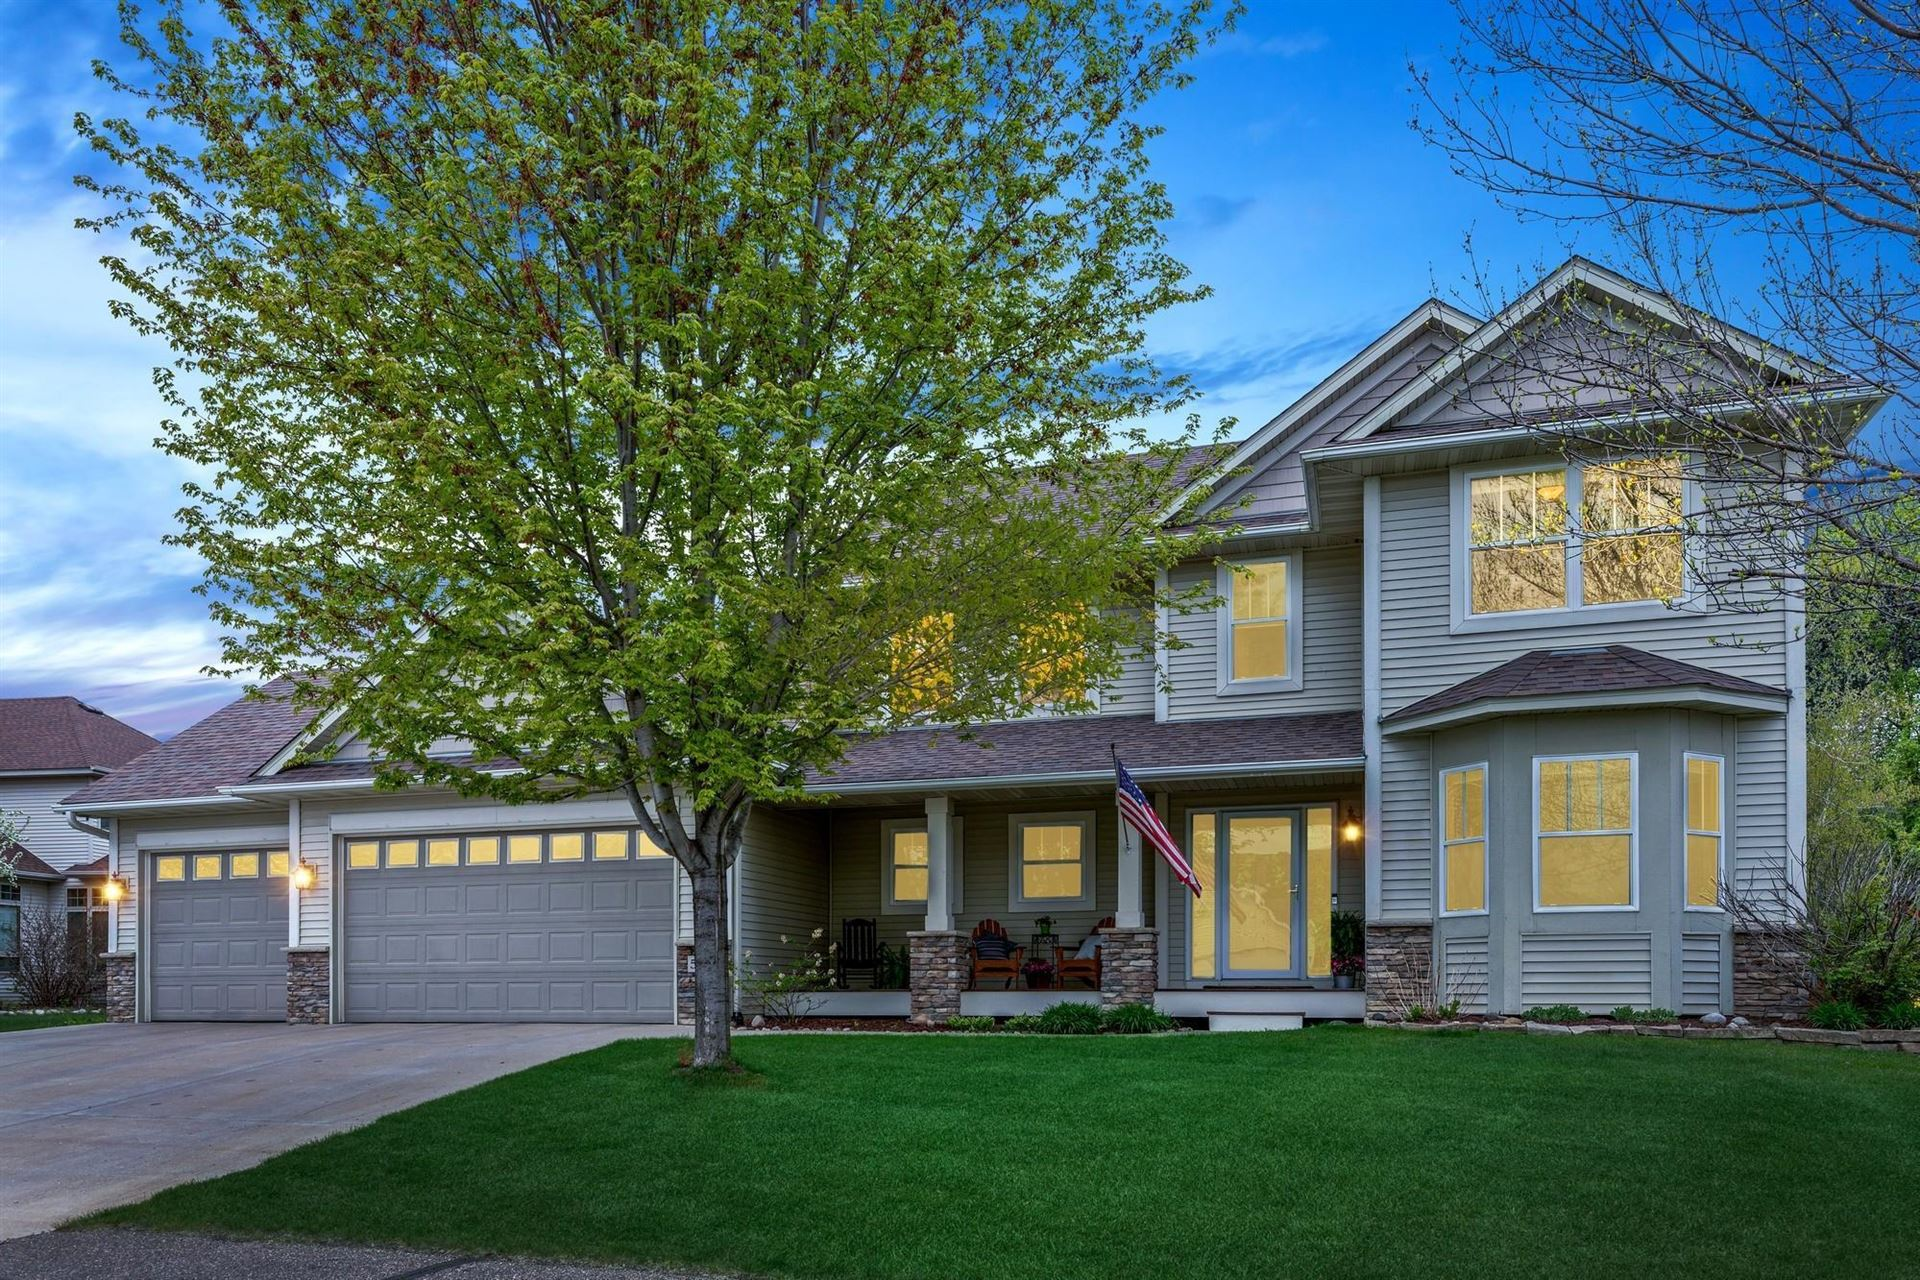 Photo of 5393 203rd Street W, Farmington, MN 55024 (MLS # 5748258)